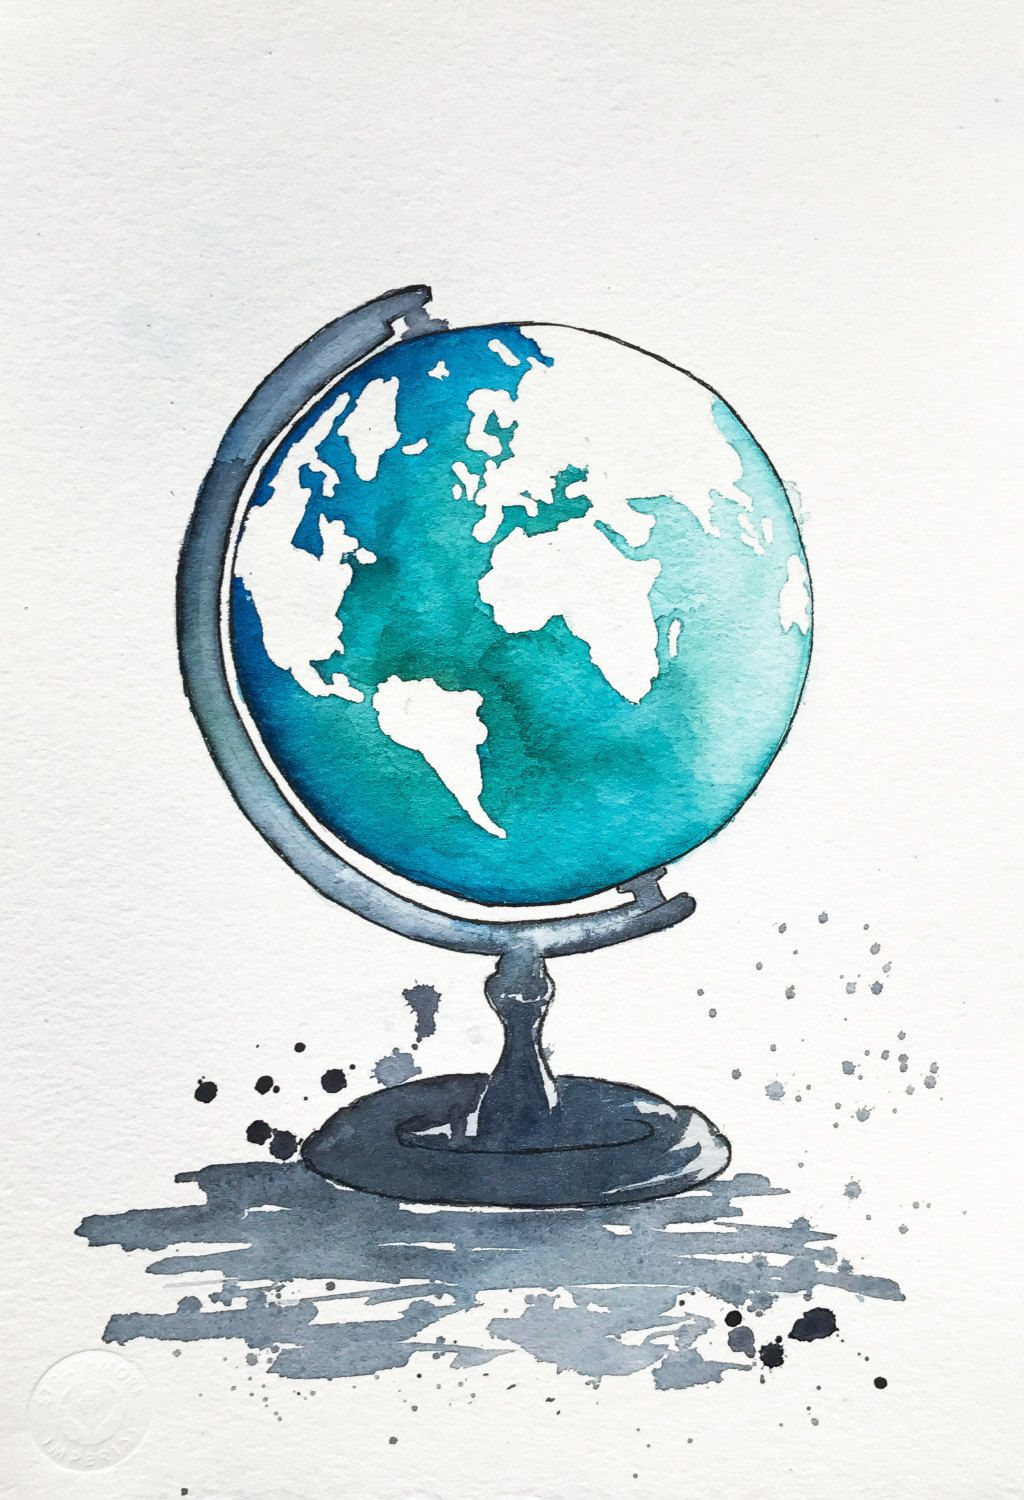 original world map watercolor painting globe illustration travel illustrator modern wall art home decor handmade holiday gift 75 x 11 by